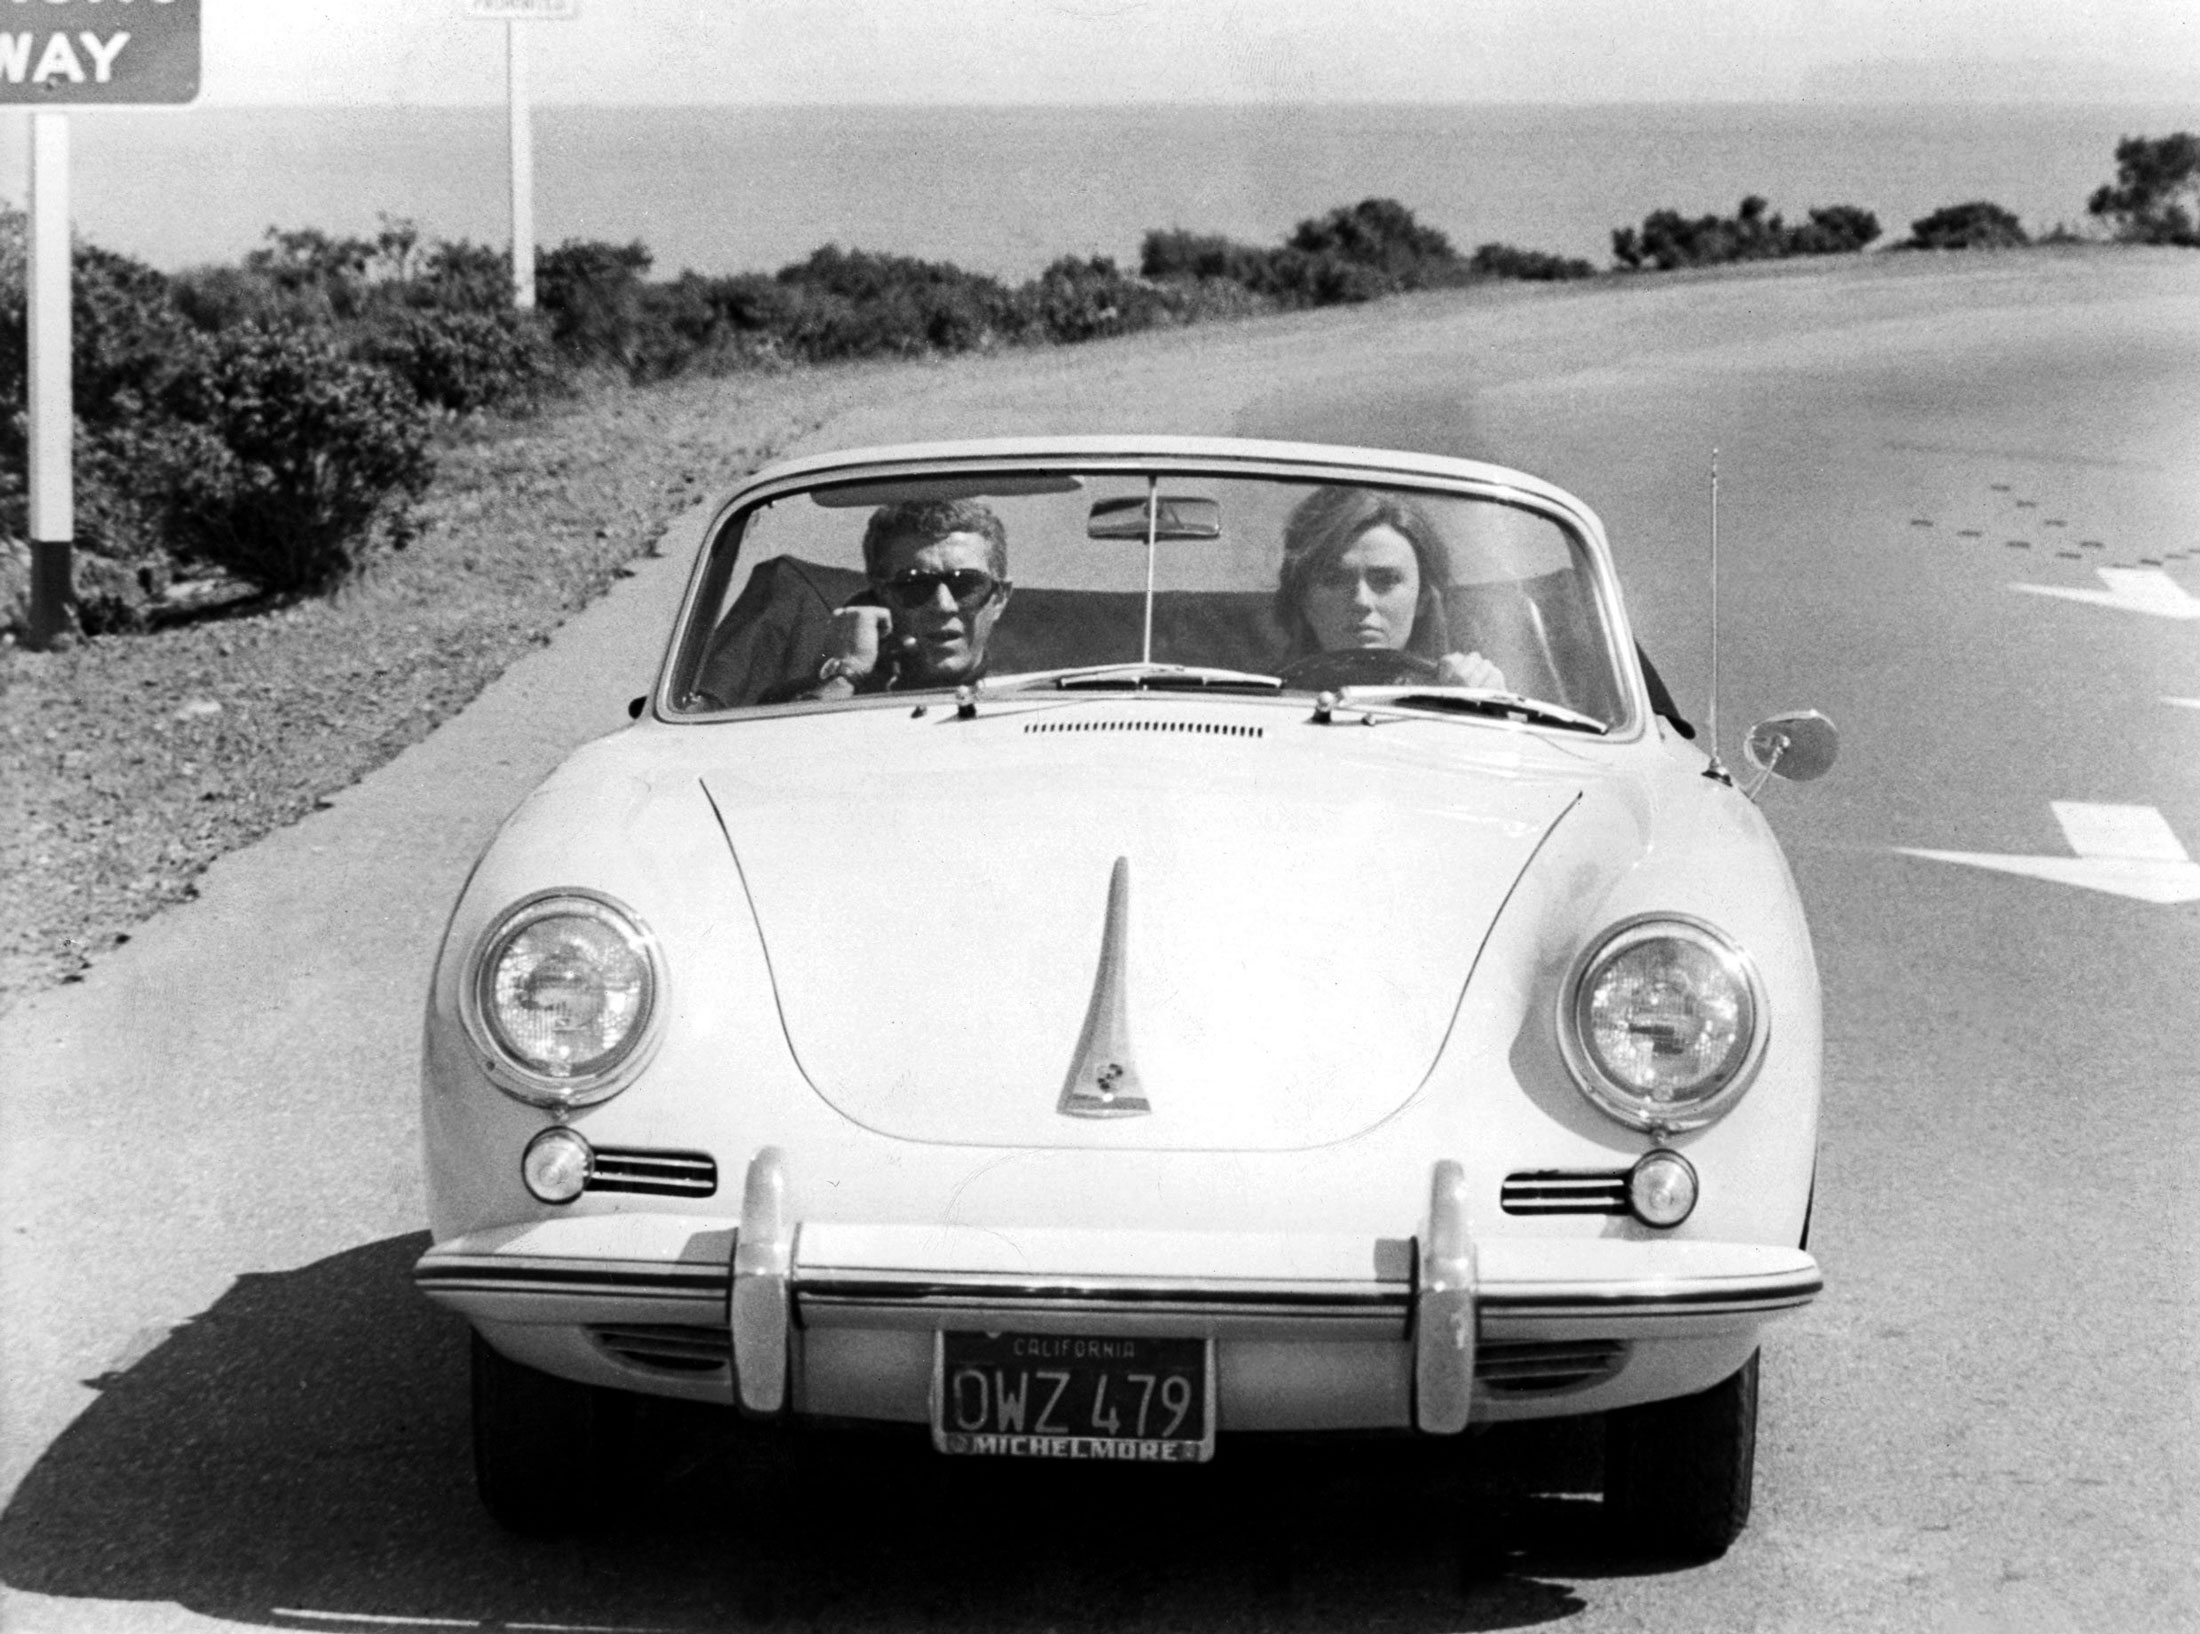 Police Car Chase Wallpaper Steve Mcqueen And The Sexiest Cars And Motorcycles On Film